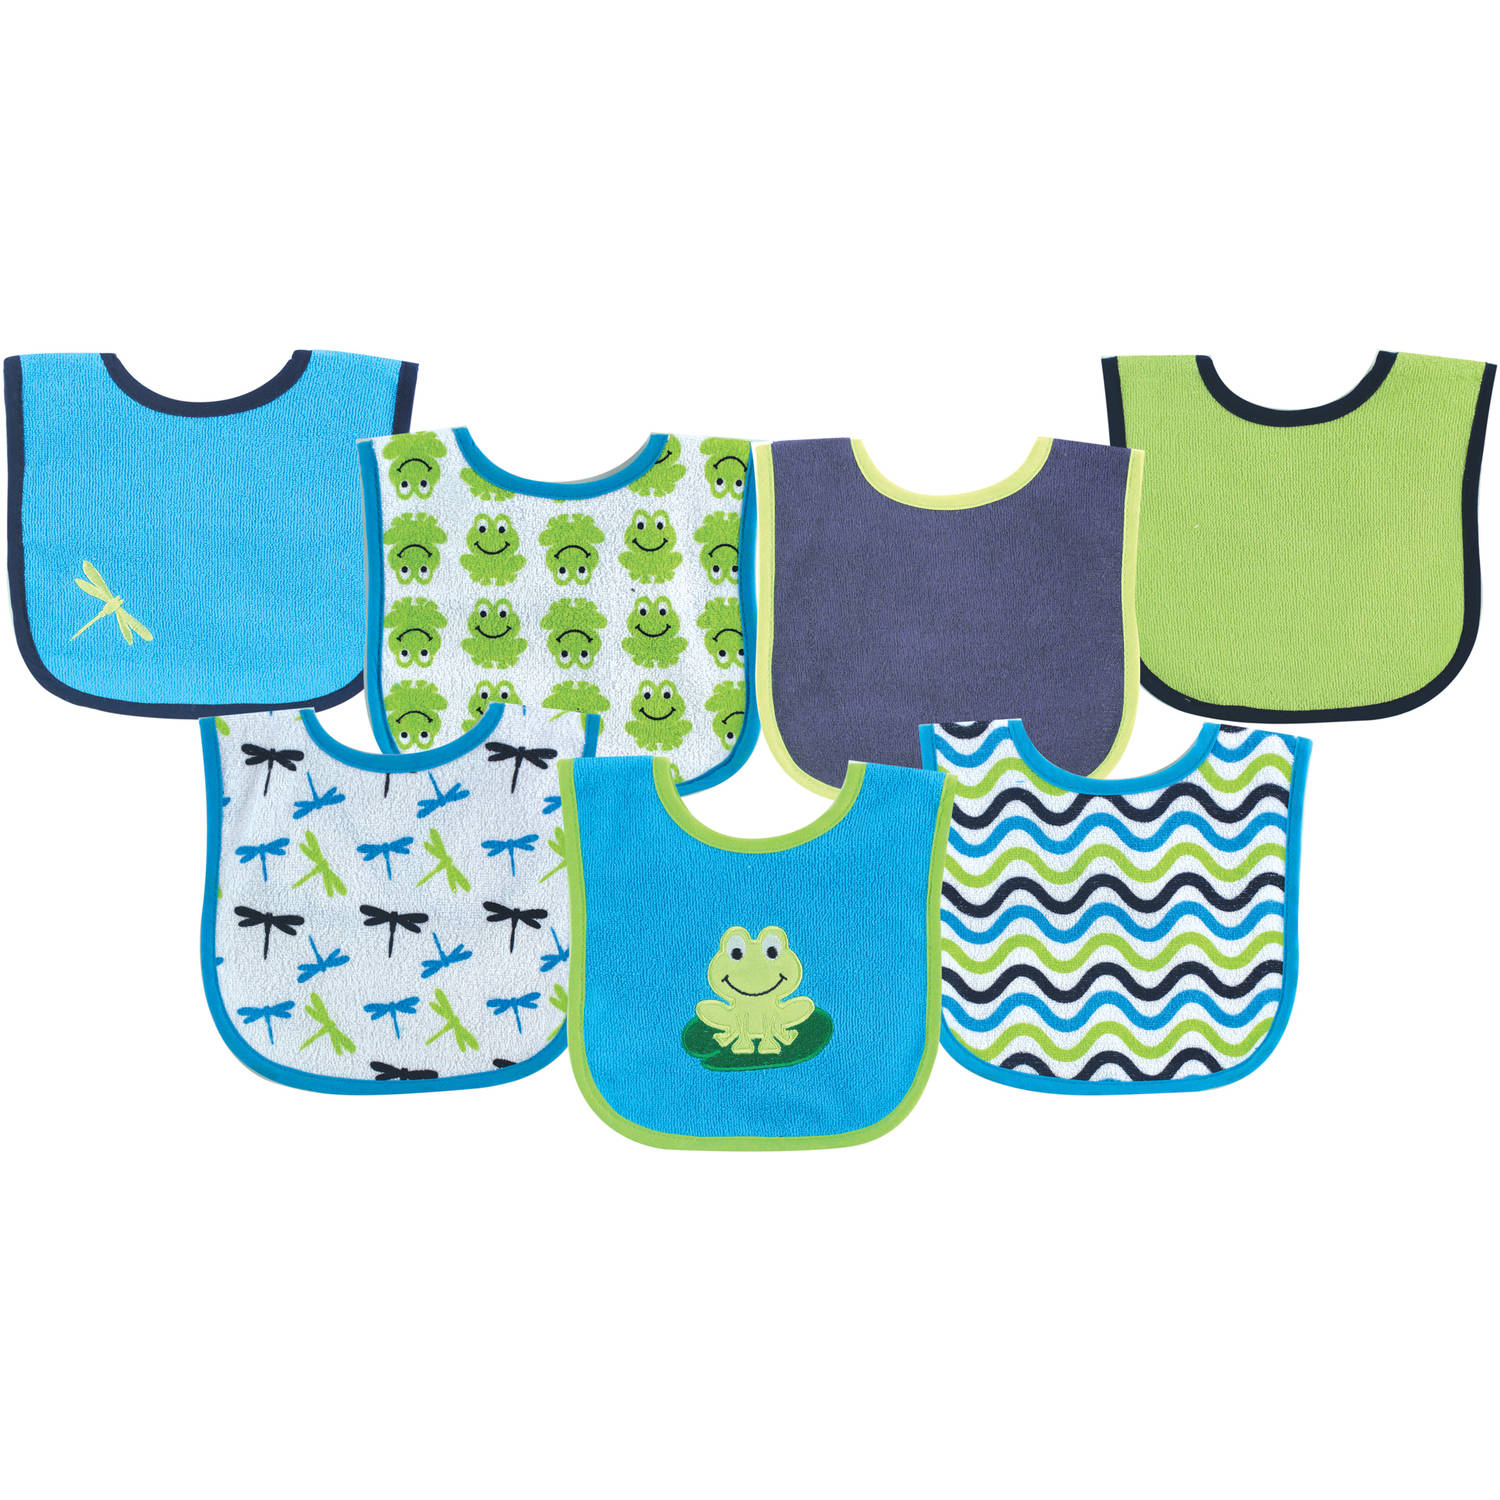 Luvable Friends Applique/Print Bib, 7pk, Multiple Colors